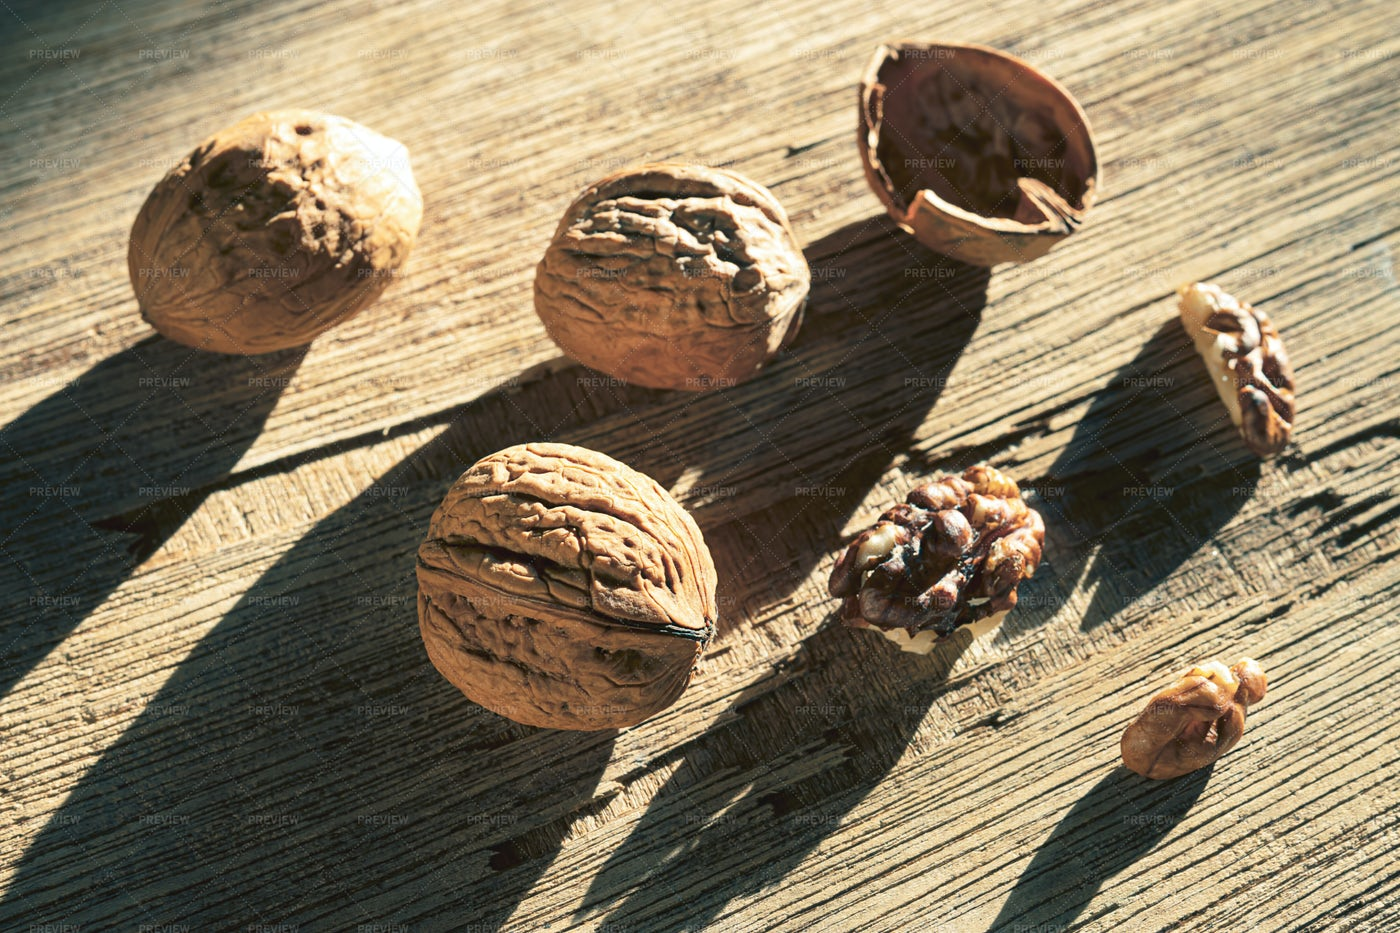 Walnuts On Wooden Surface: Stock Photos